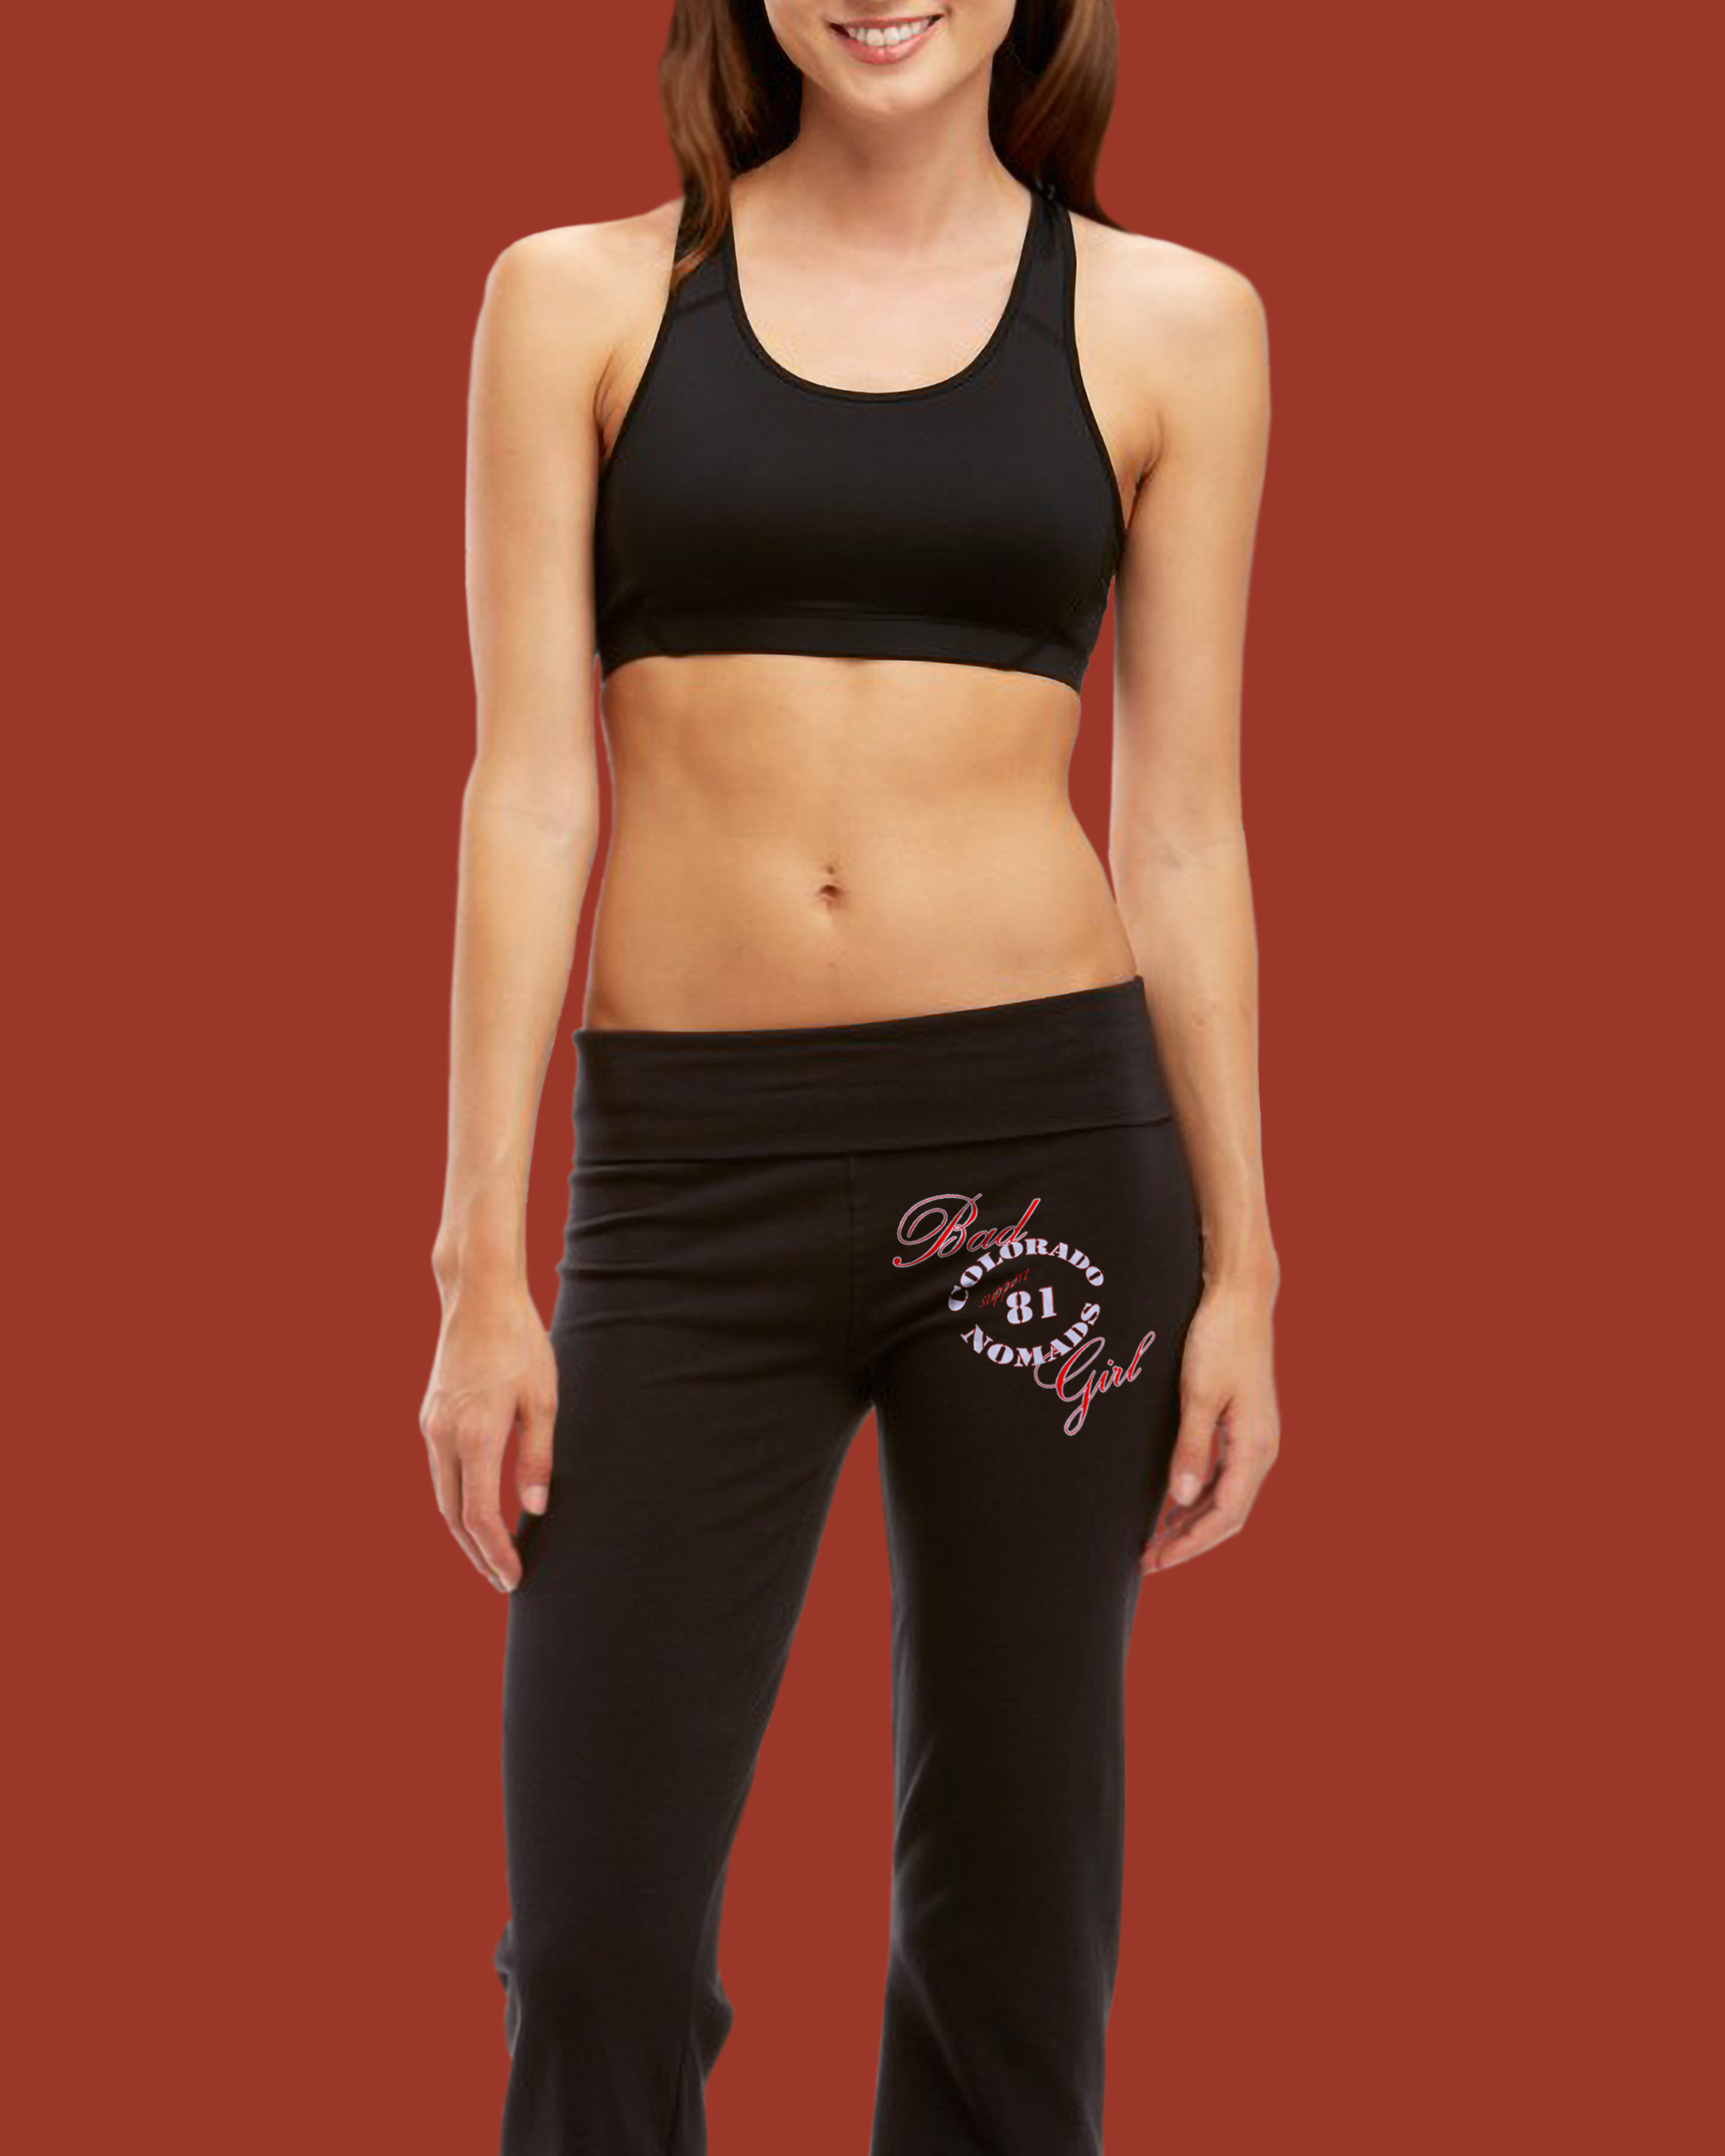 Hells Angels Support 81 Yoga Pants